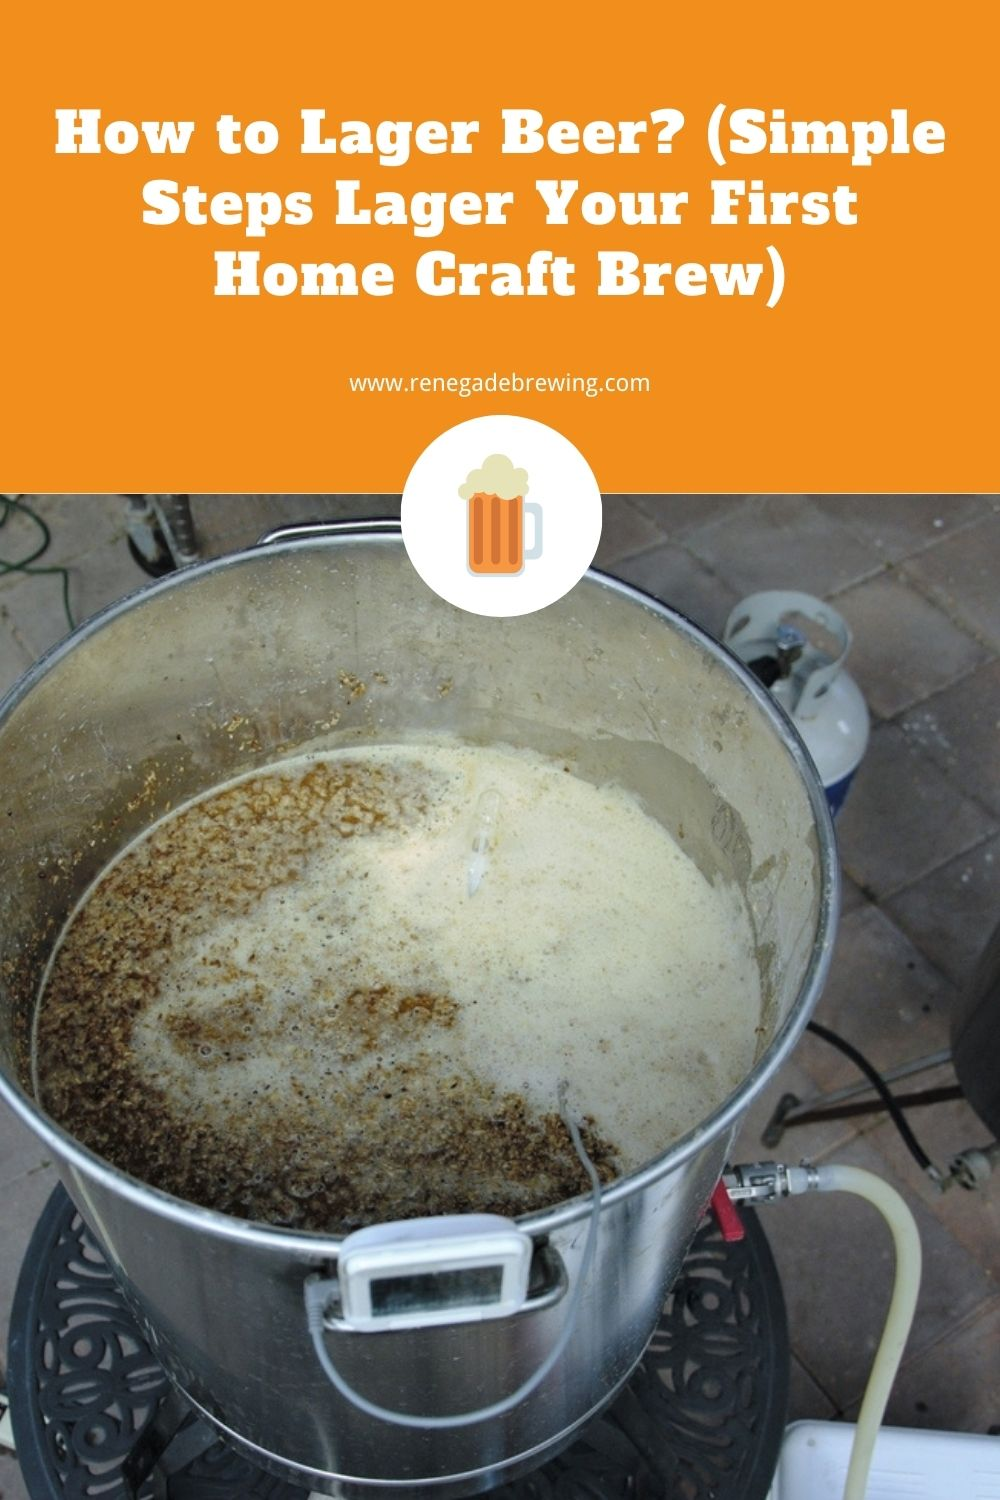 How to Lager Beer (Simple Steps Lager Your First Home Craft Brew) 1